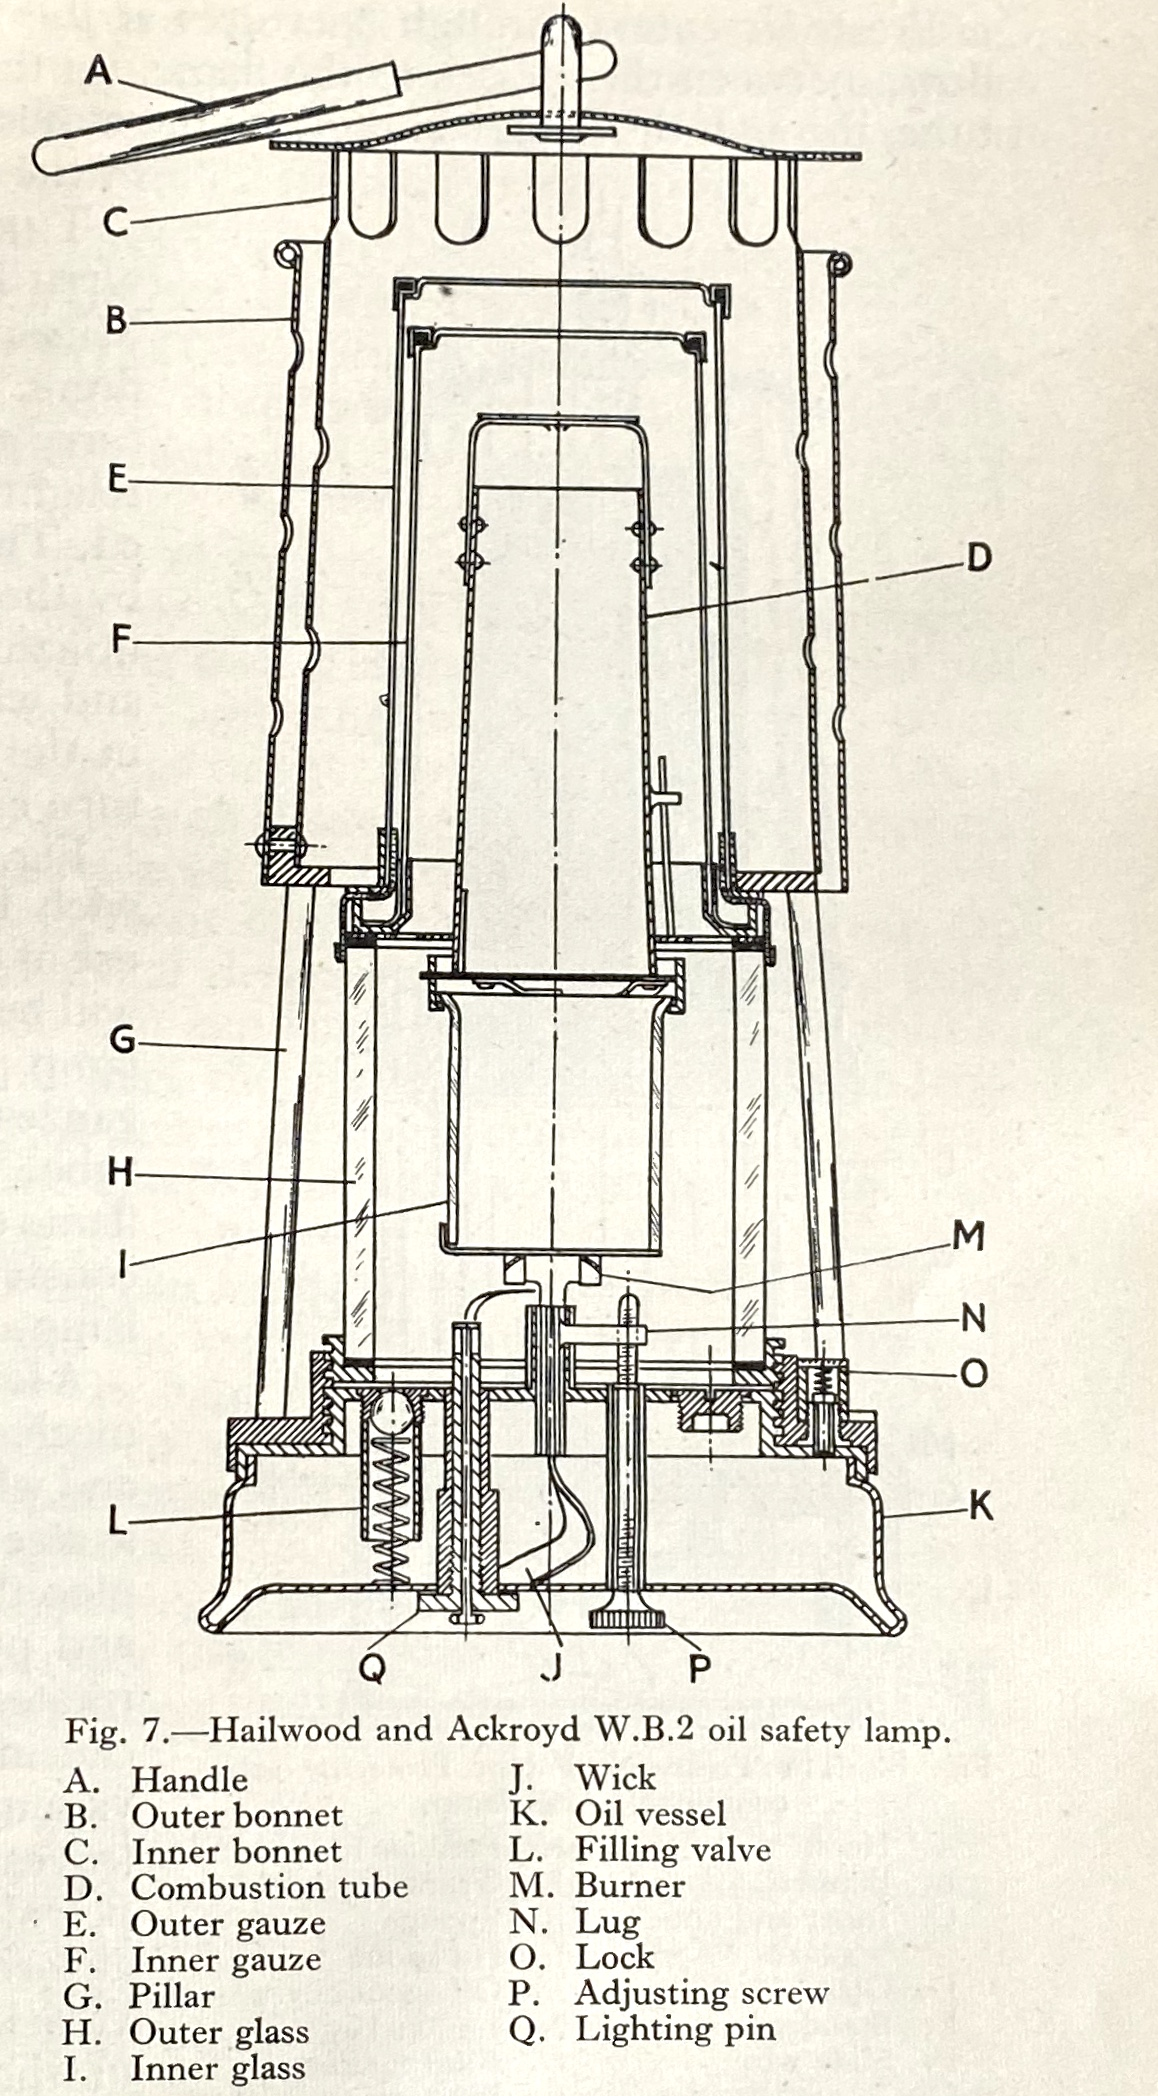 Diagram of a safety lamp, 1950s.